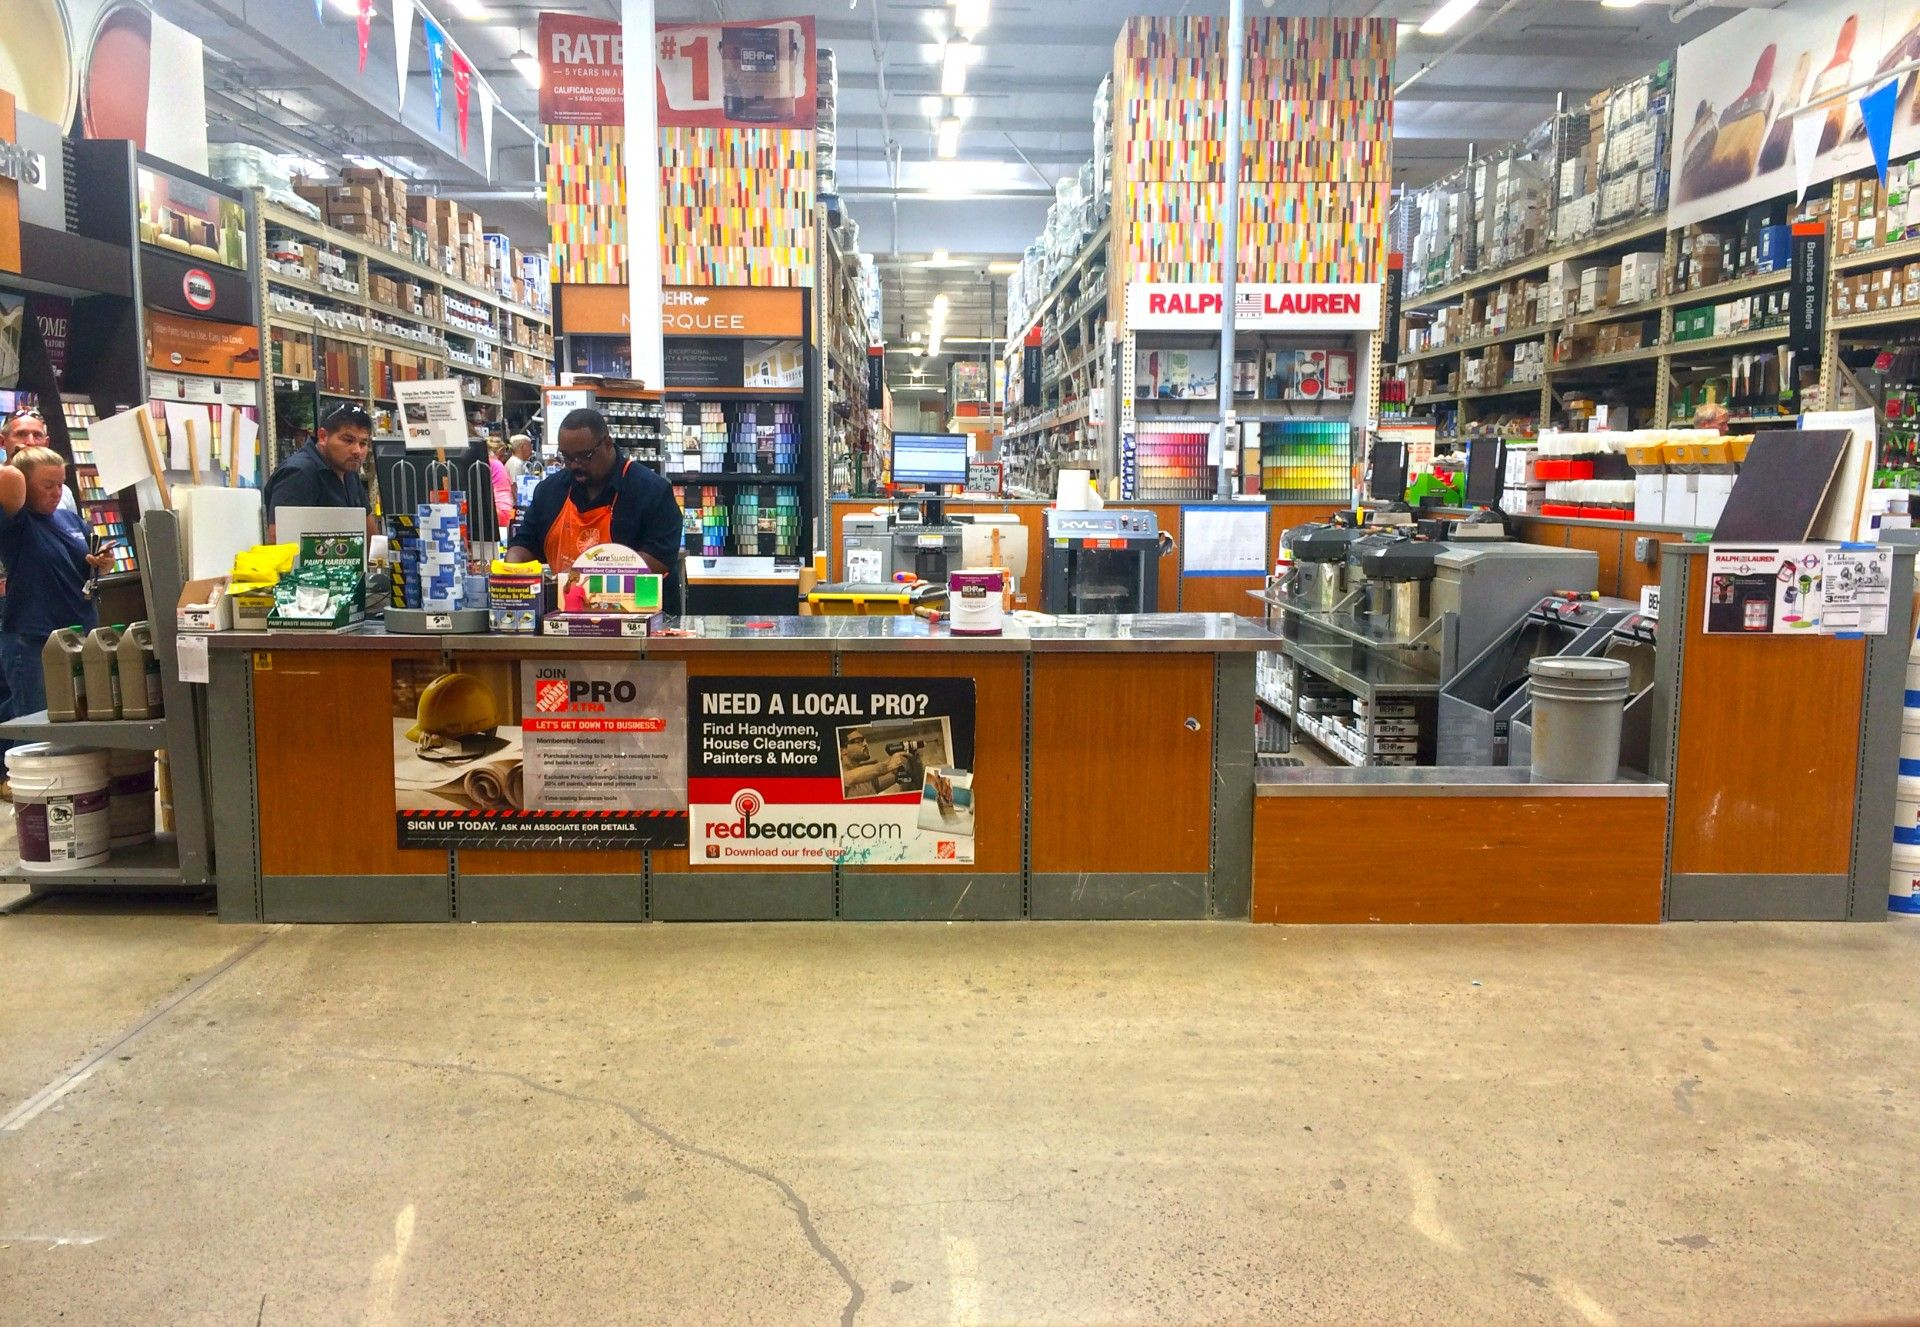 Home Depot Paints Store Design   Google Search